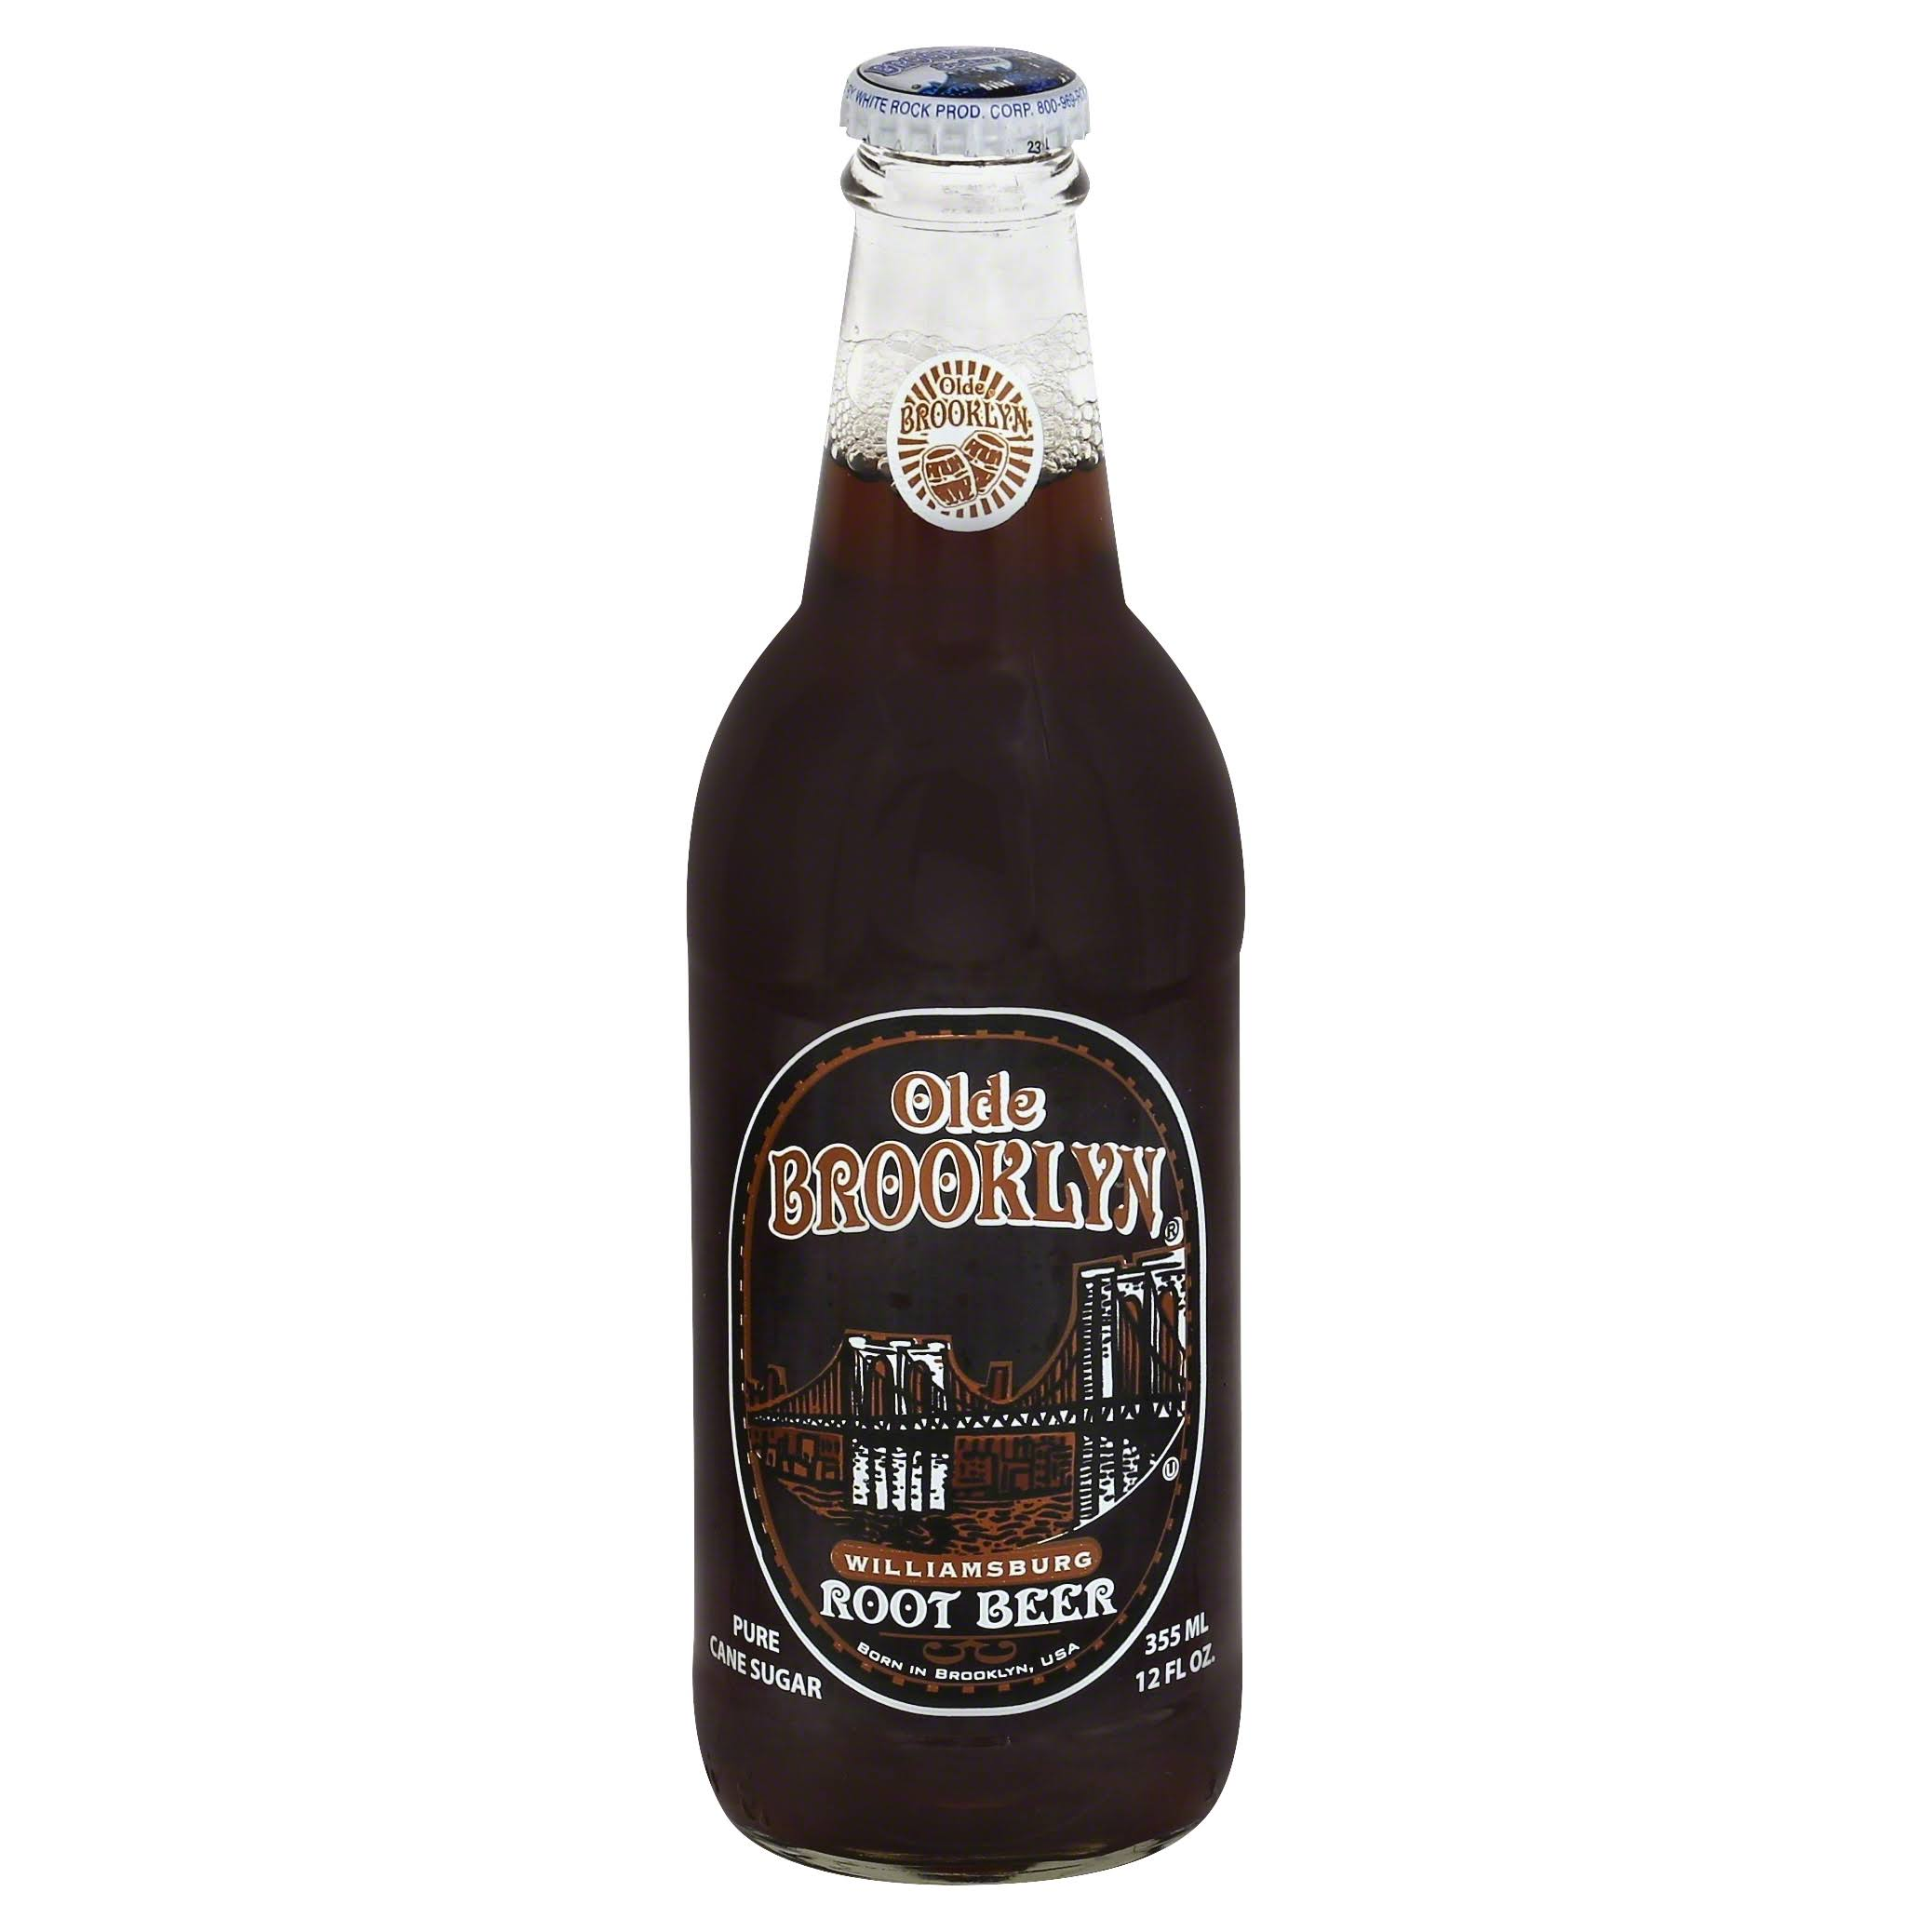 Olde Brooklyn Root Beer